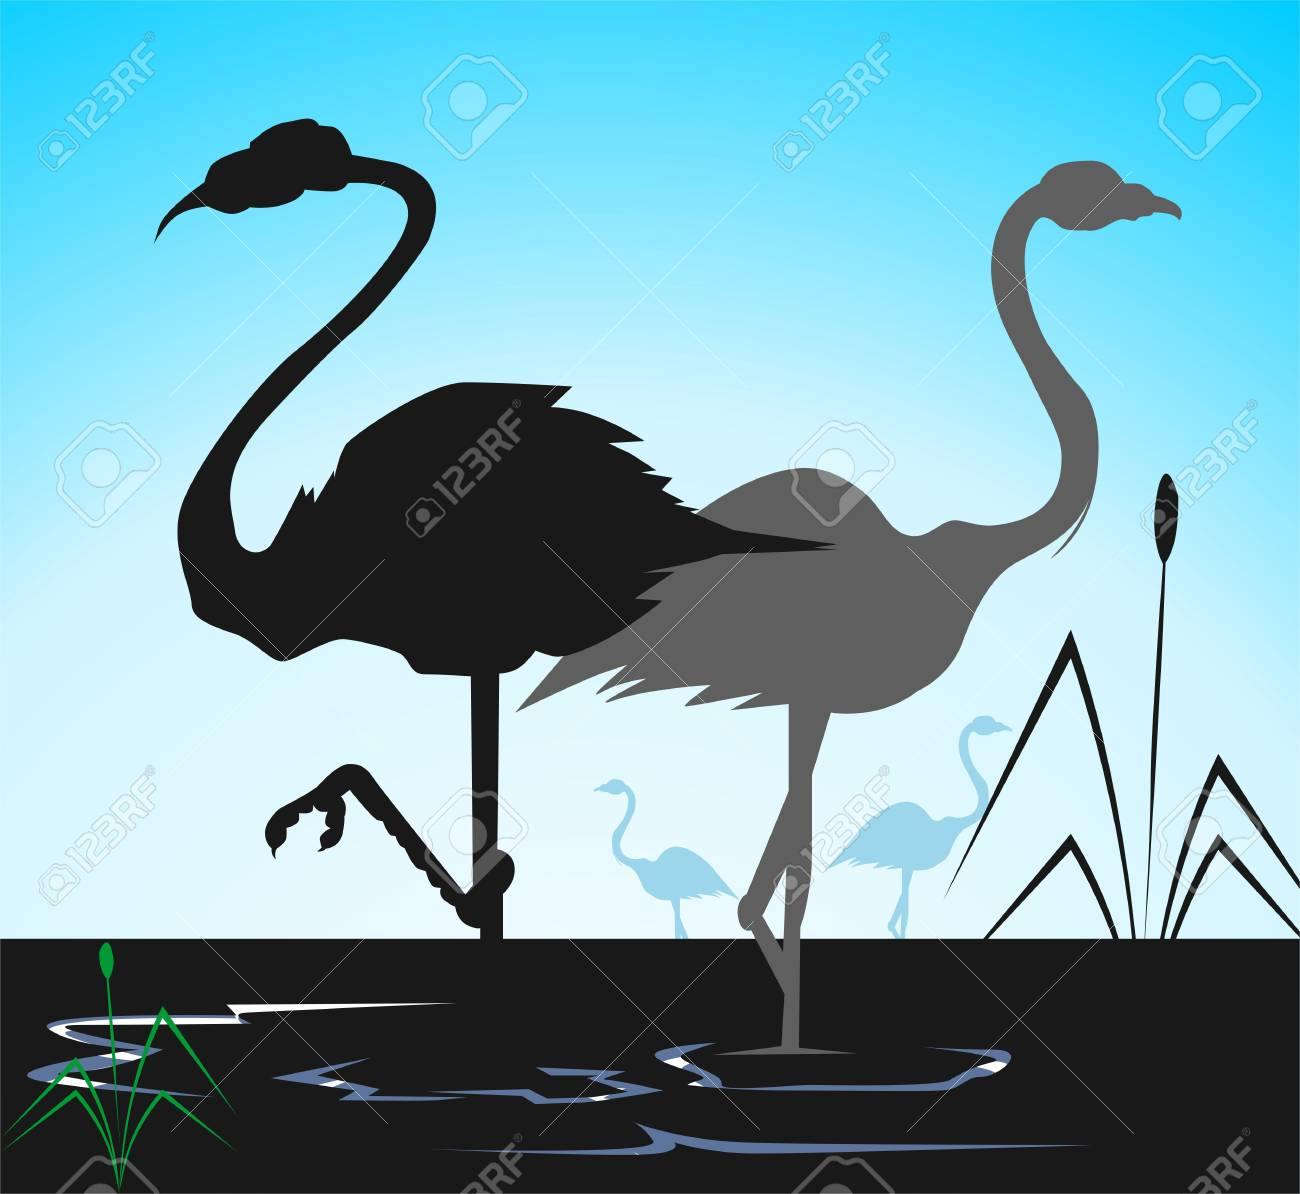 Illustration of two cranes in water Stock Photo - 3417917